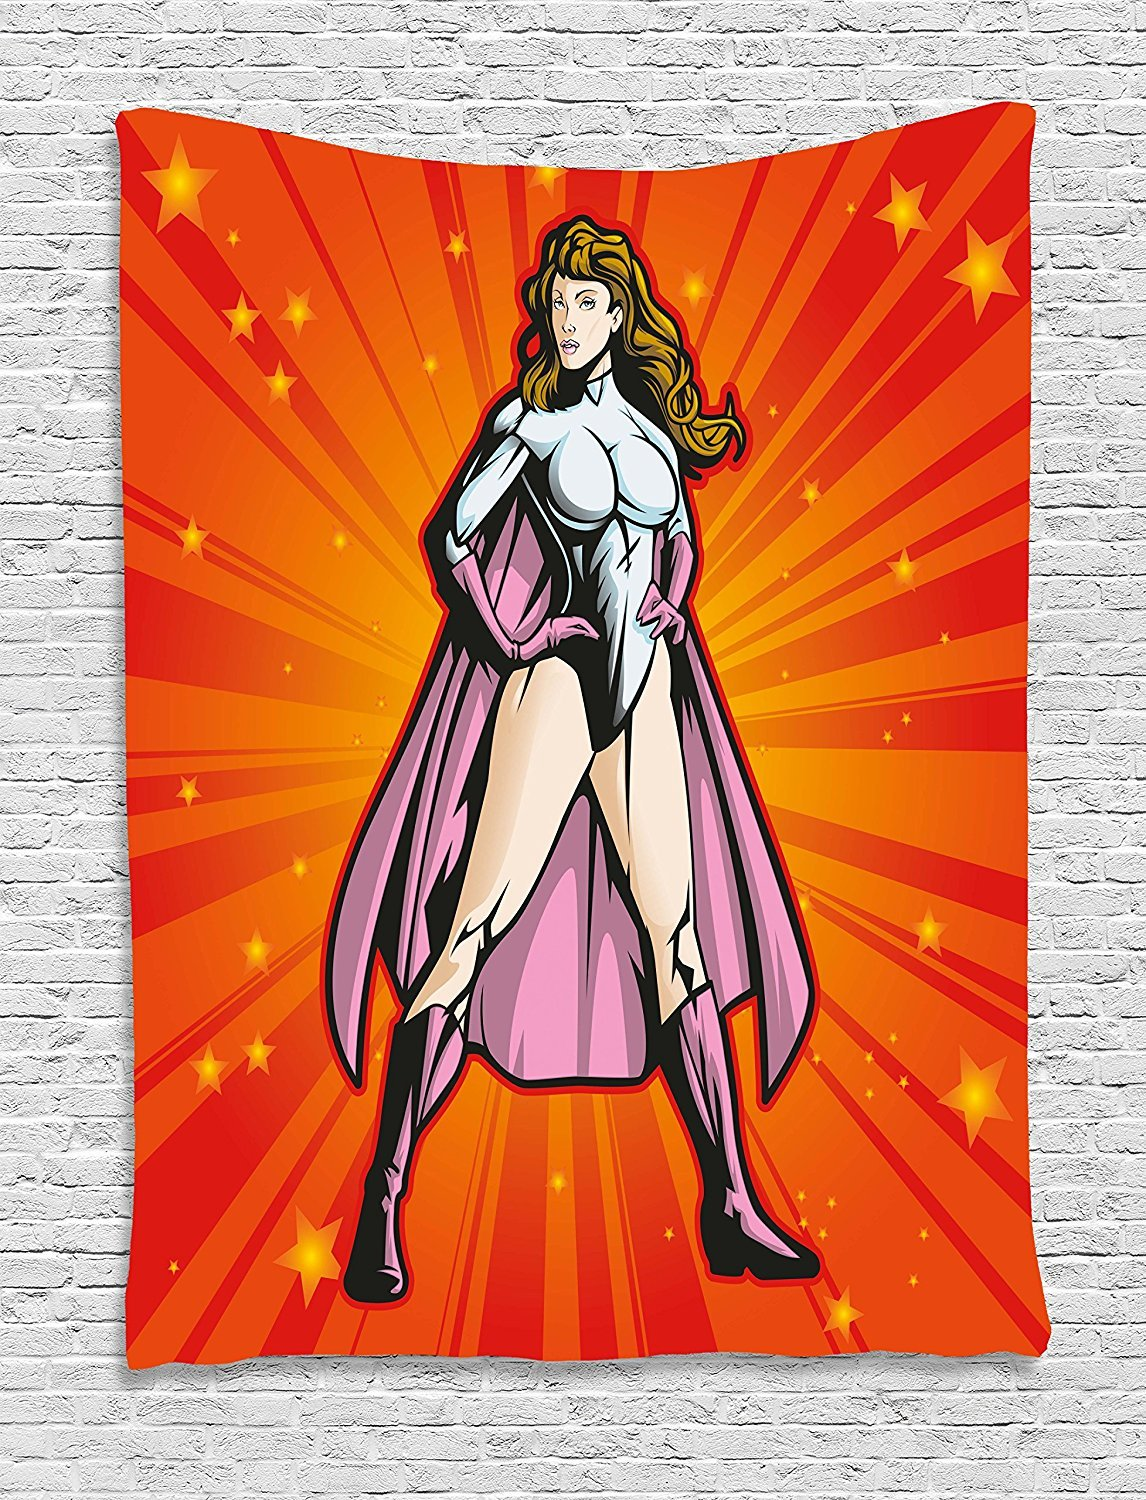 asddcdfdd Superhero Tapestry, Supergirl Female Hero with Super Powers Caped Action Lady Design, Wall Hanging for Bedroom Living Room Dorm, 60 W X 80 L Inches, Fuchsia Vermilion Baby Blue